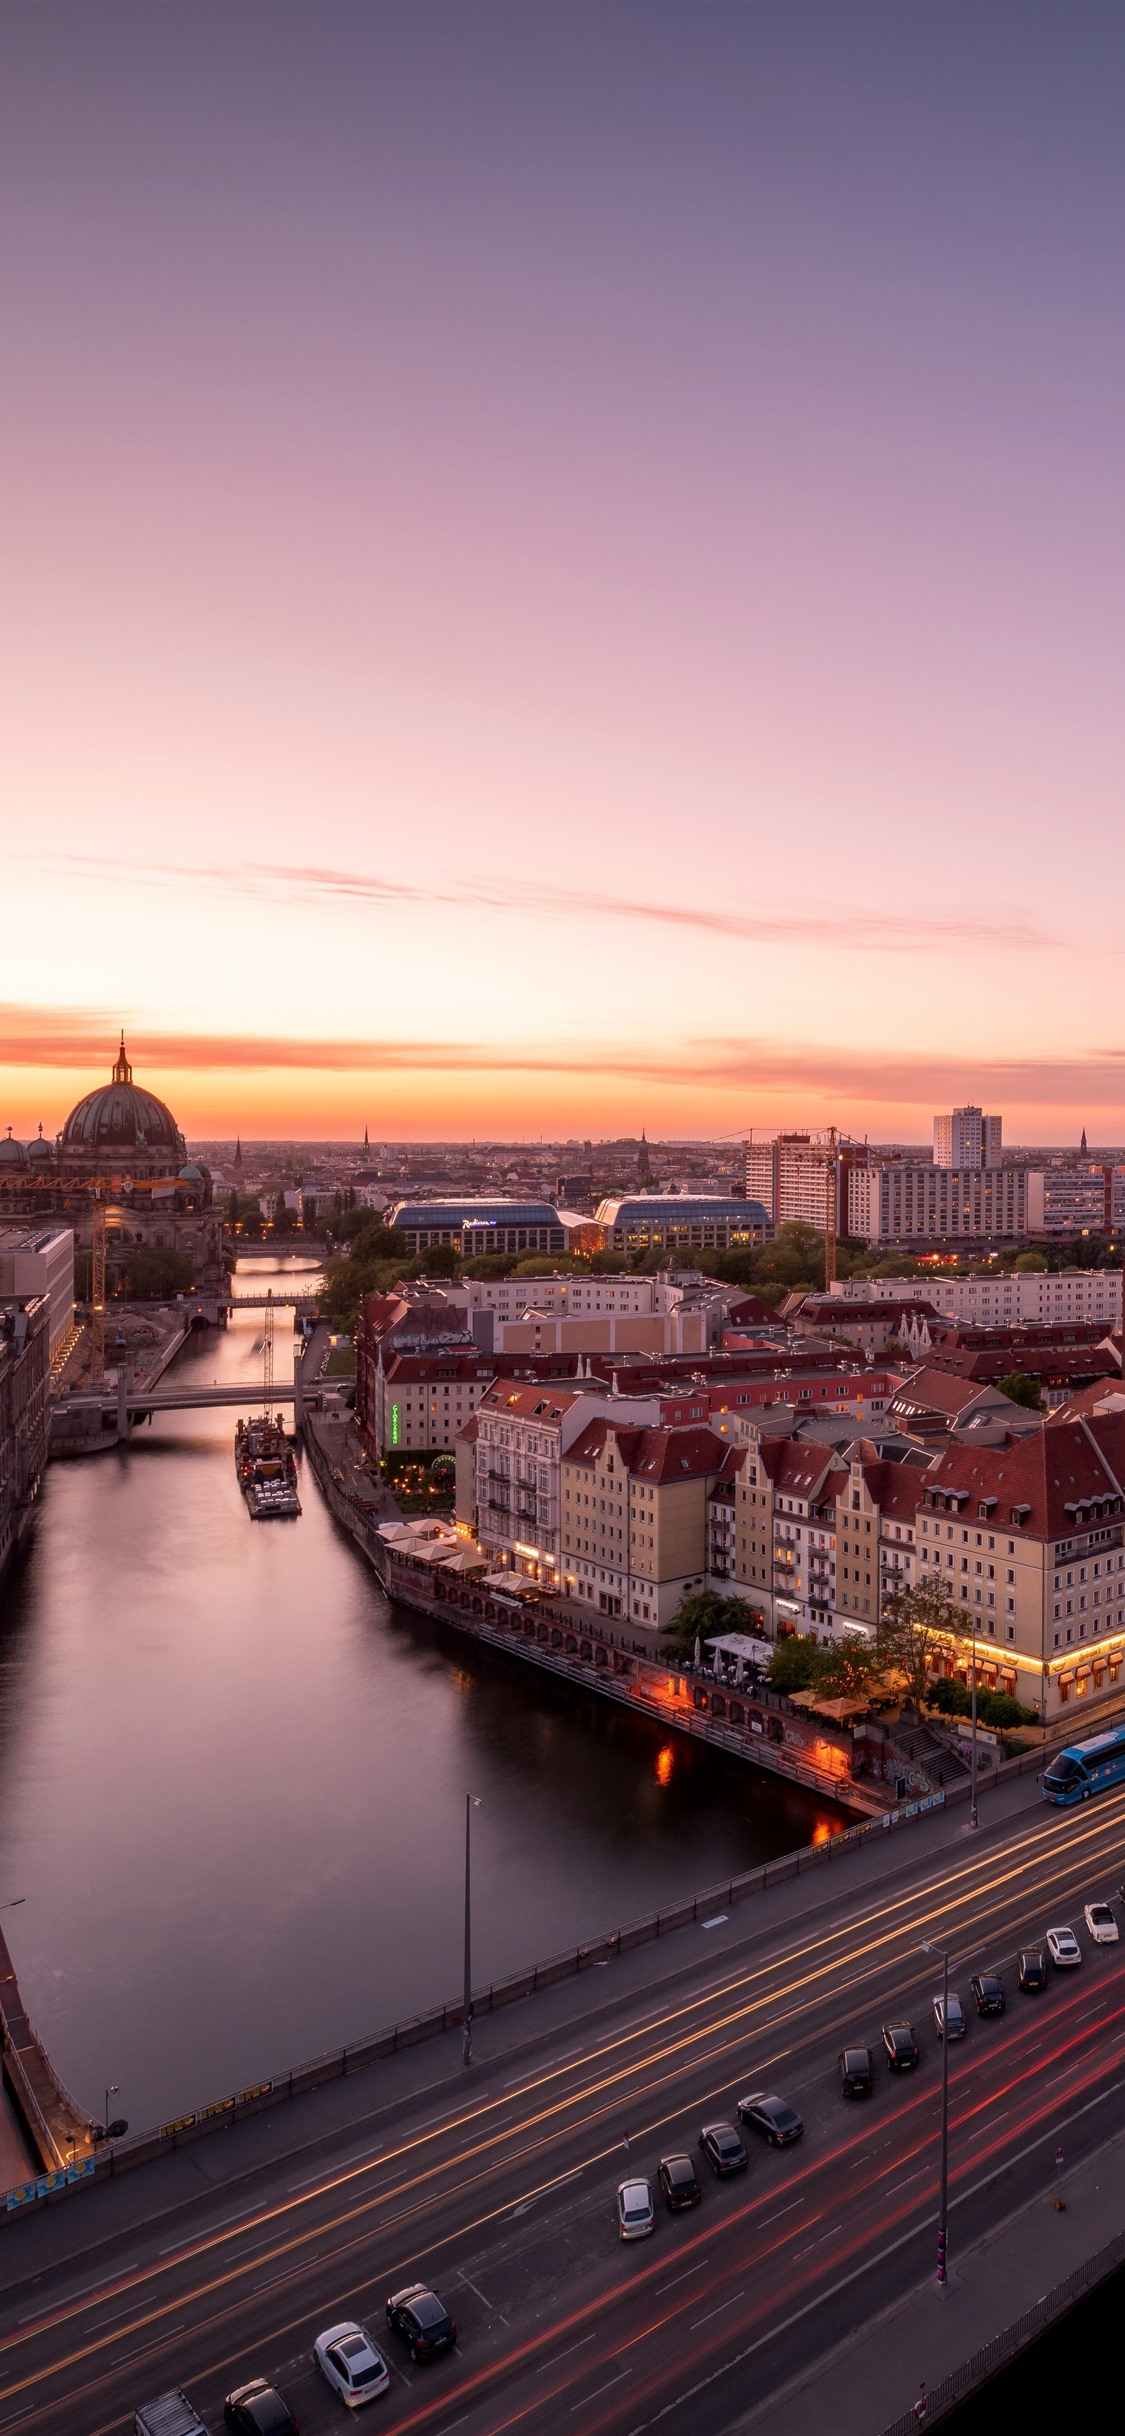 Berlin Germany City Bridge River Cars Sunset 1242x2688 Iphone 11 Pro Xs Max Wallpaper Background Picture Image